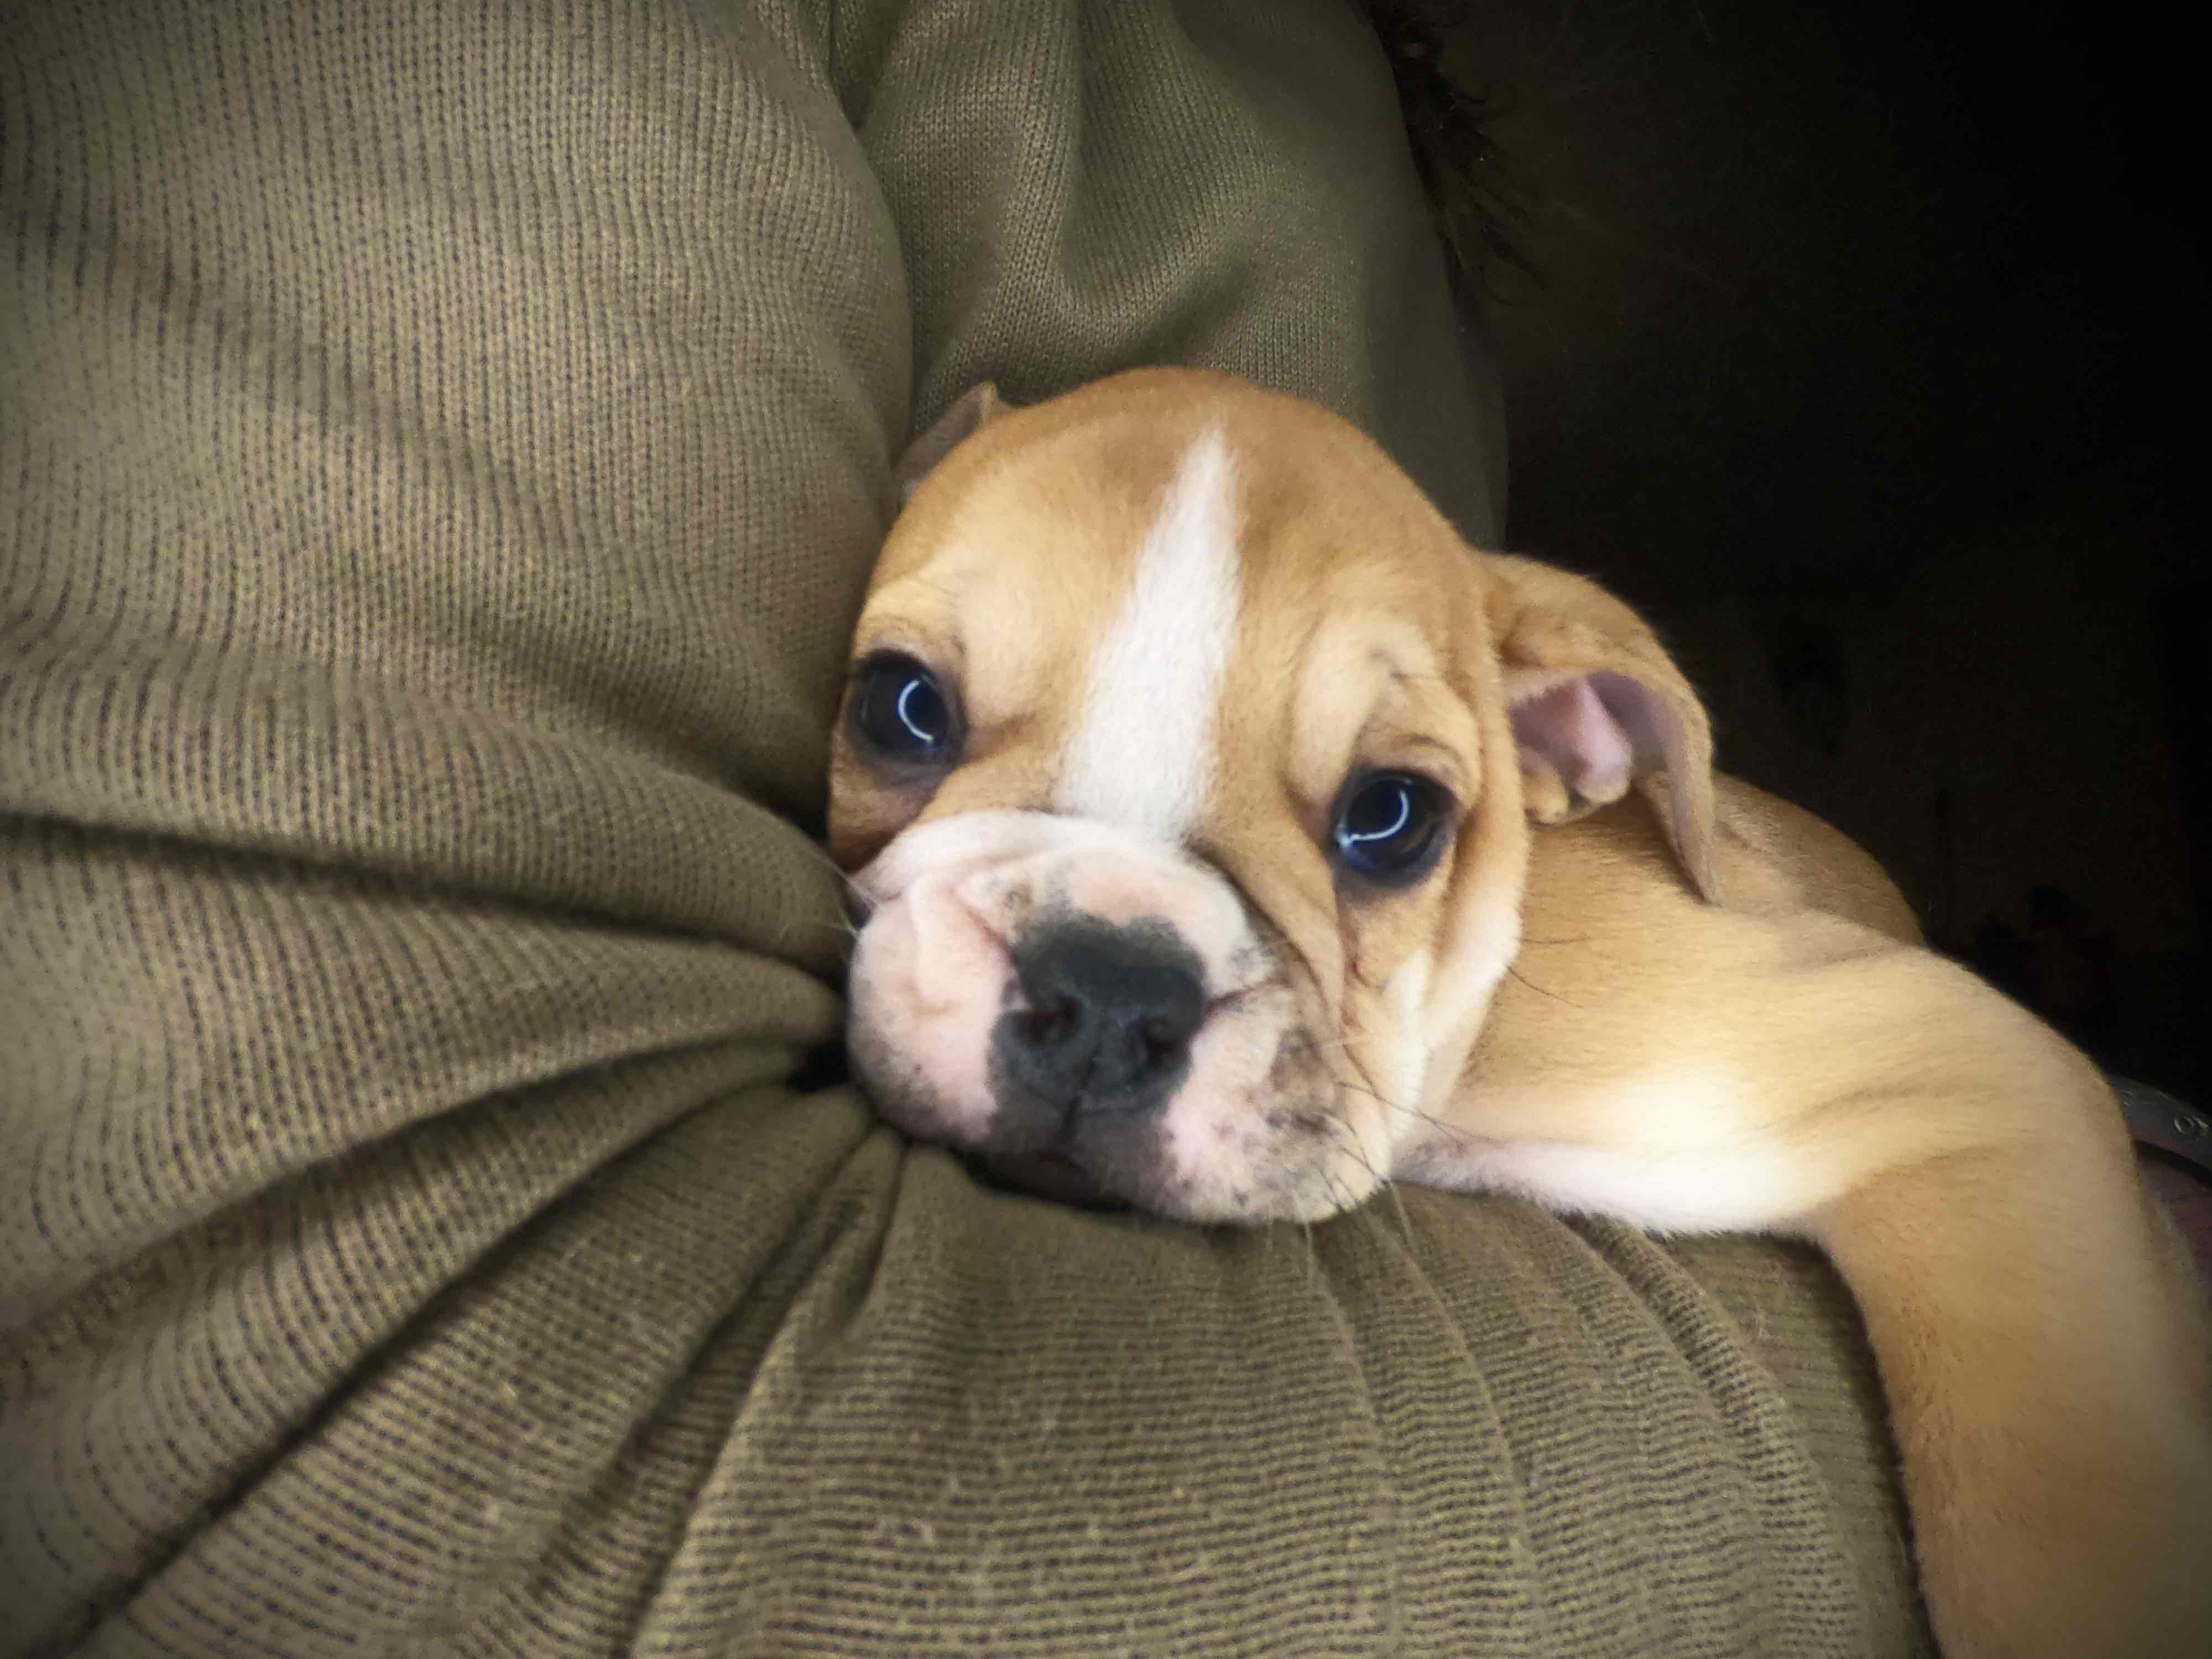 Ap Zinka Smallest Girl Of The Zs Its Cold Today So She Has To Stay Inside In 2020 Continental Bulldog Bulldogge Englische Bulldogge